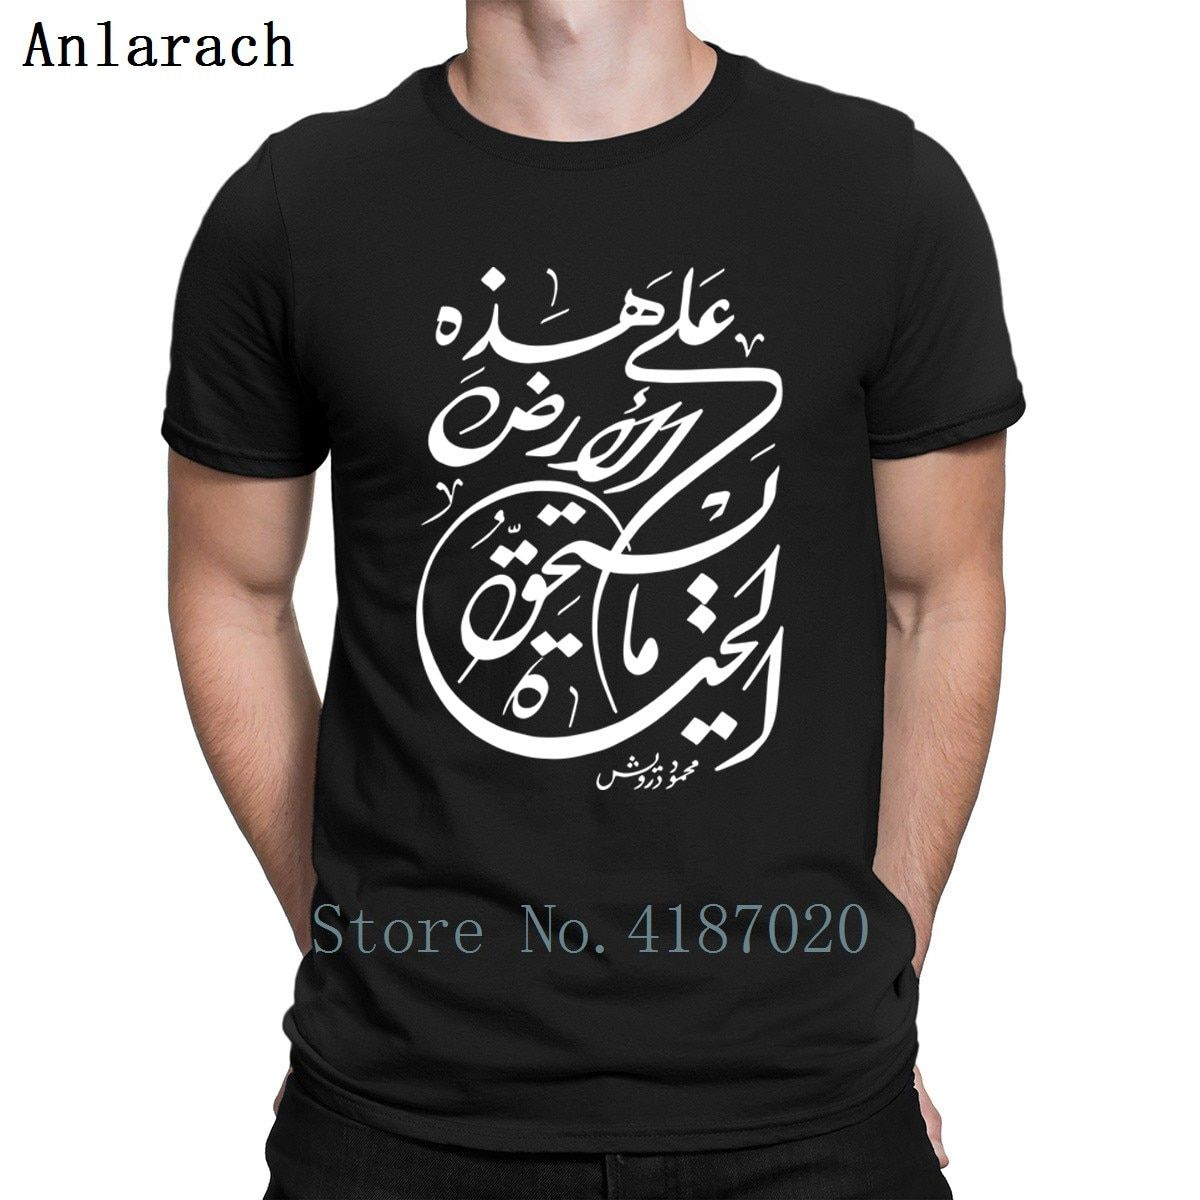 679ecbfd Arabic Calligraphy T-Shirt Clothes Funny Casual Top Quality Custom T Shirt  For Men Crew